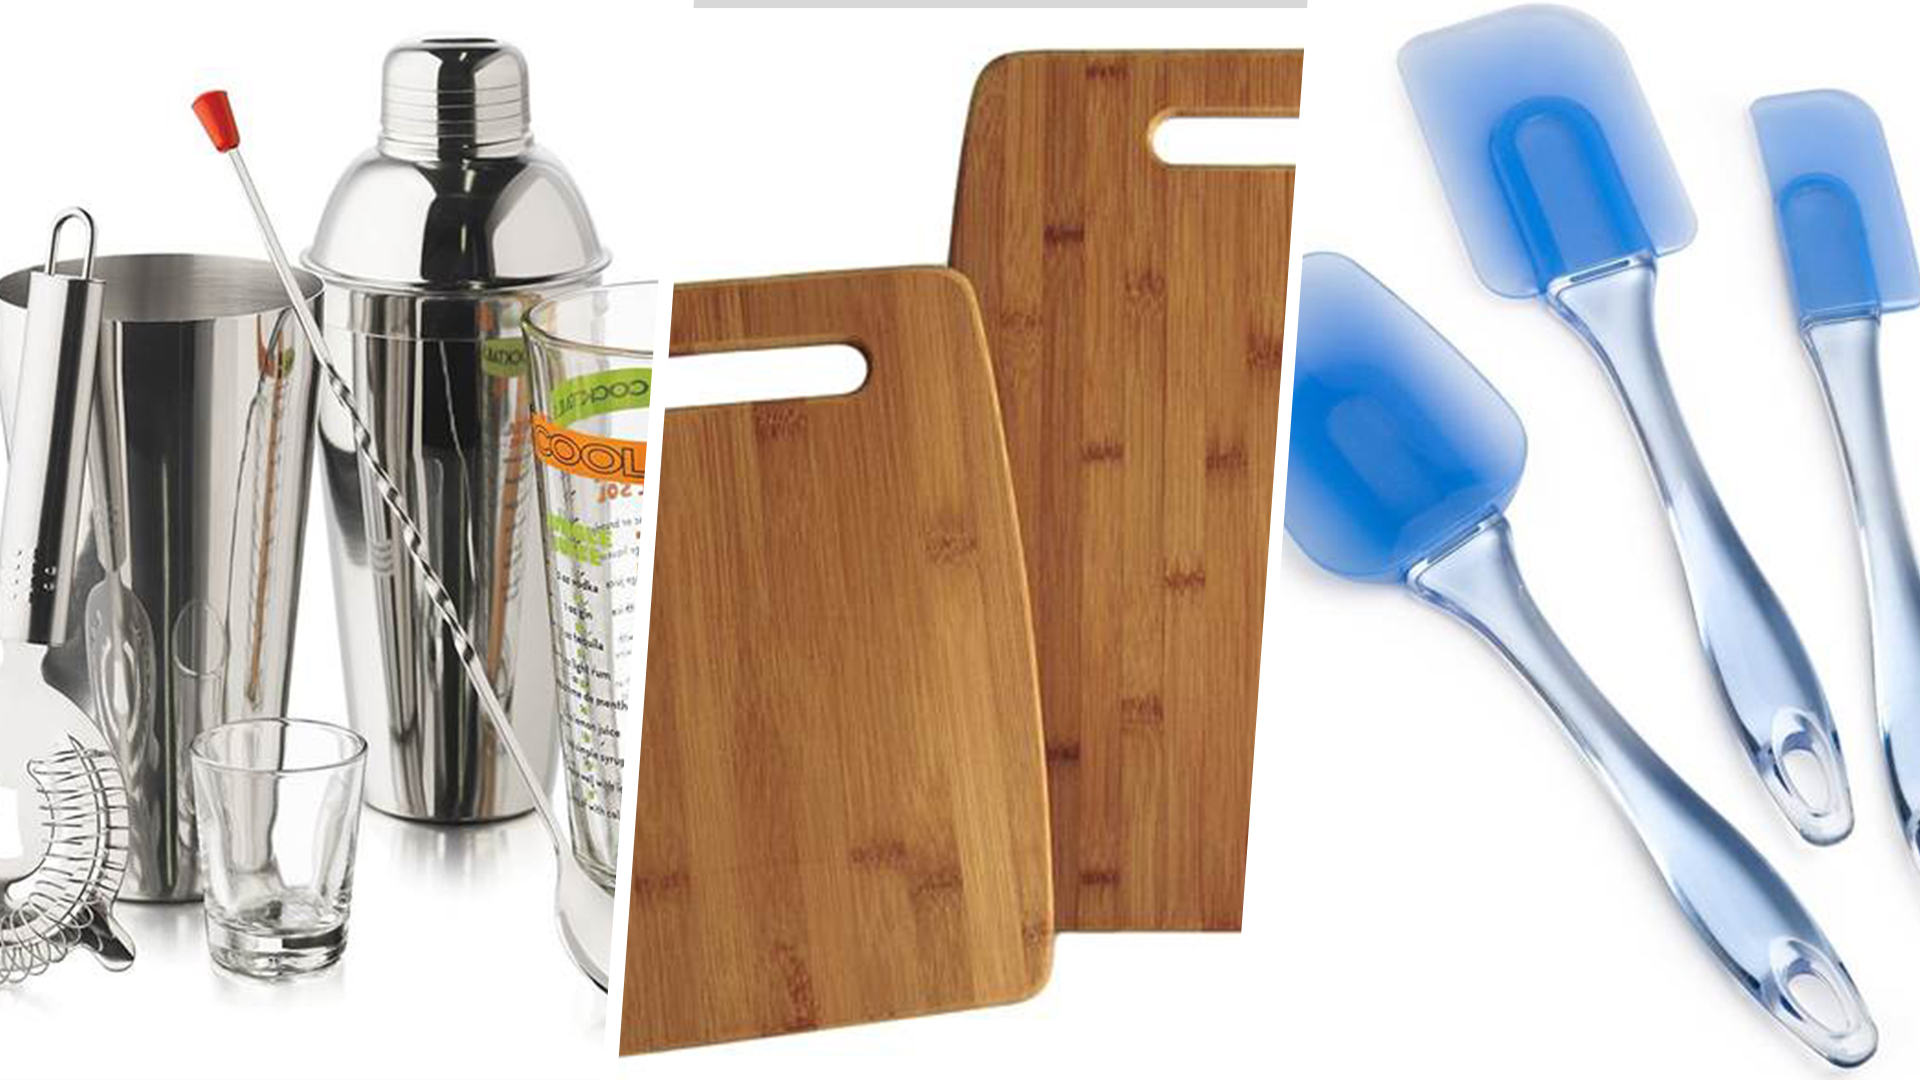 What Are Some Good Wedding Gifts: The Most Popular Wedding Registry Gifts